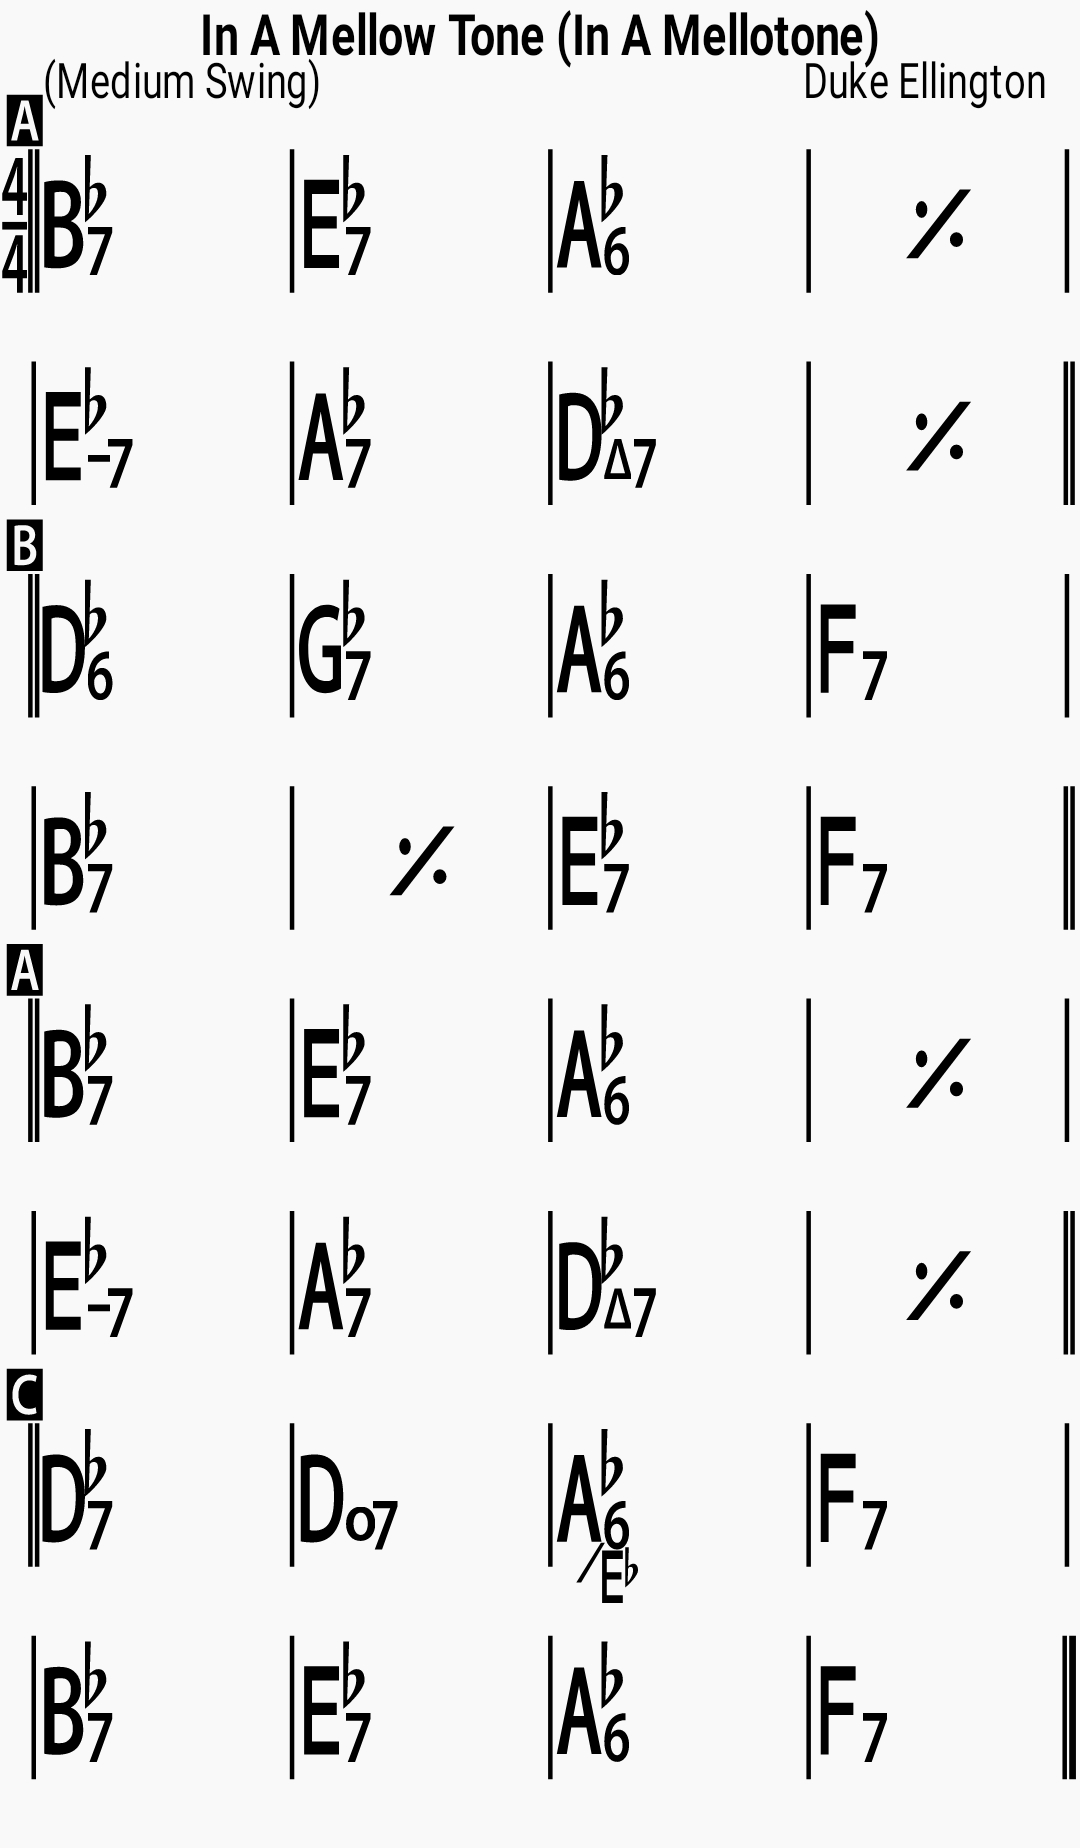 Chord chart for the jazz standard In A Mellow Tone